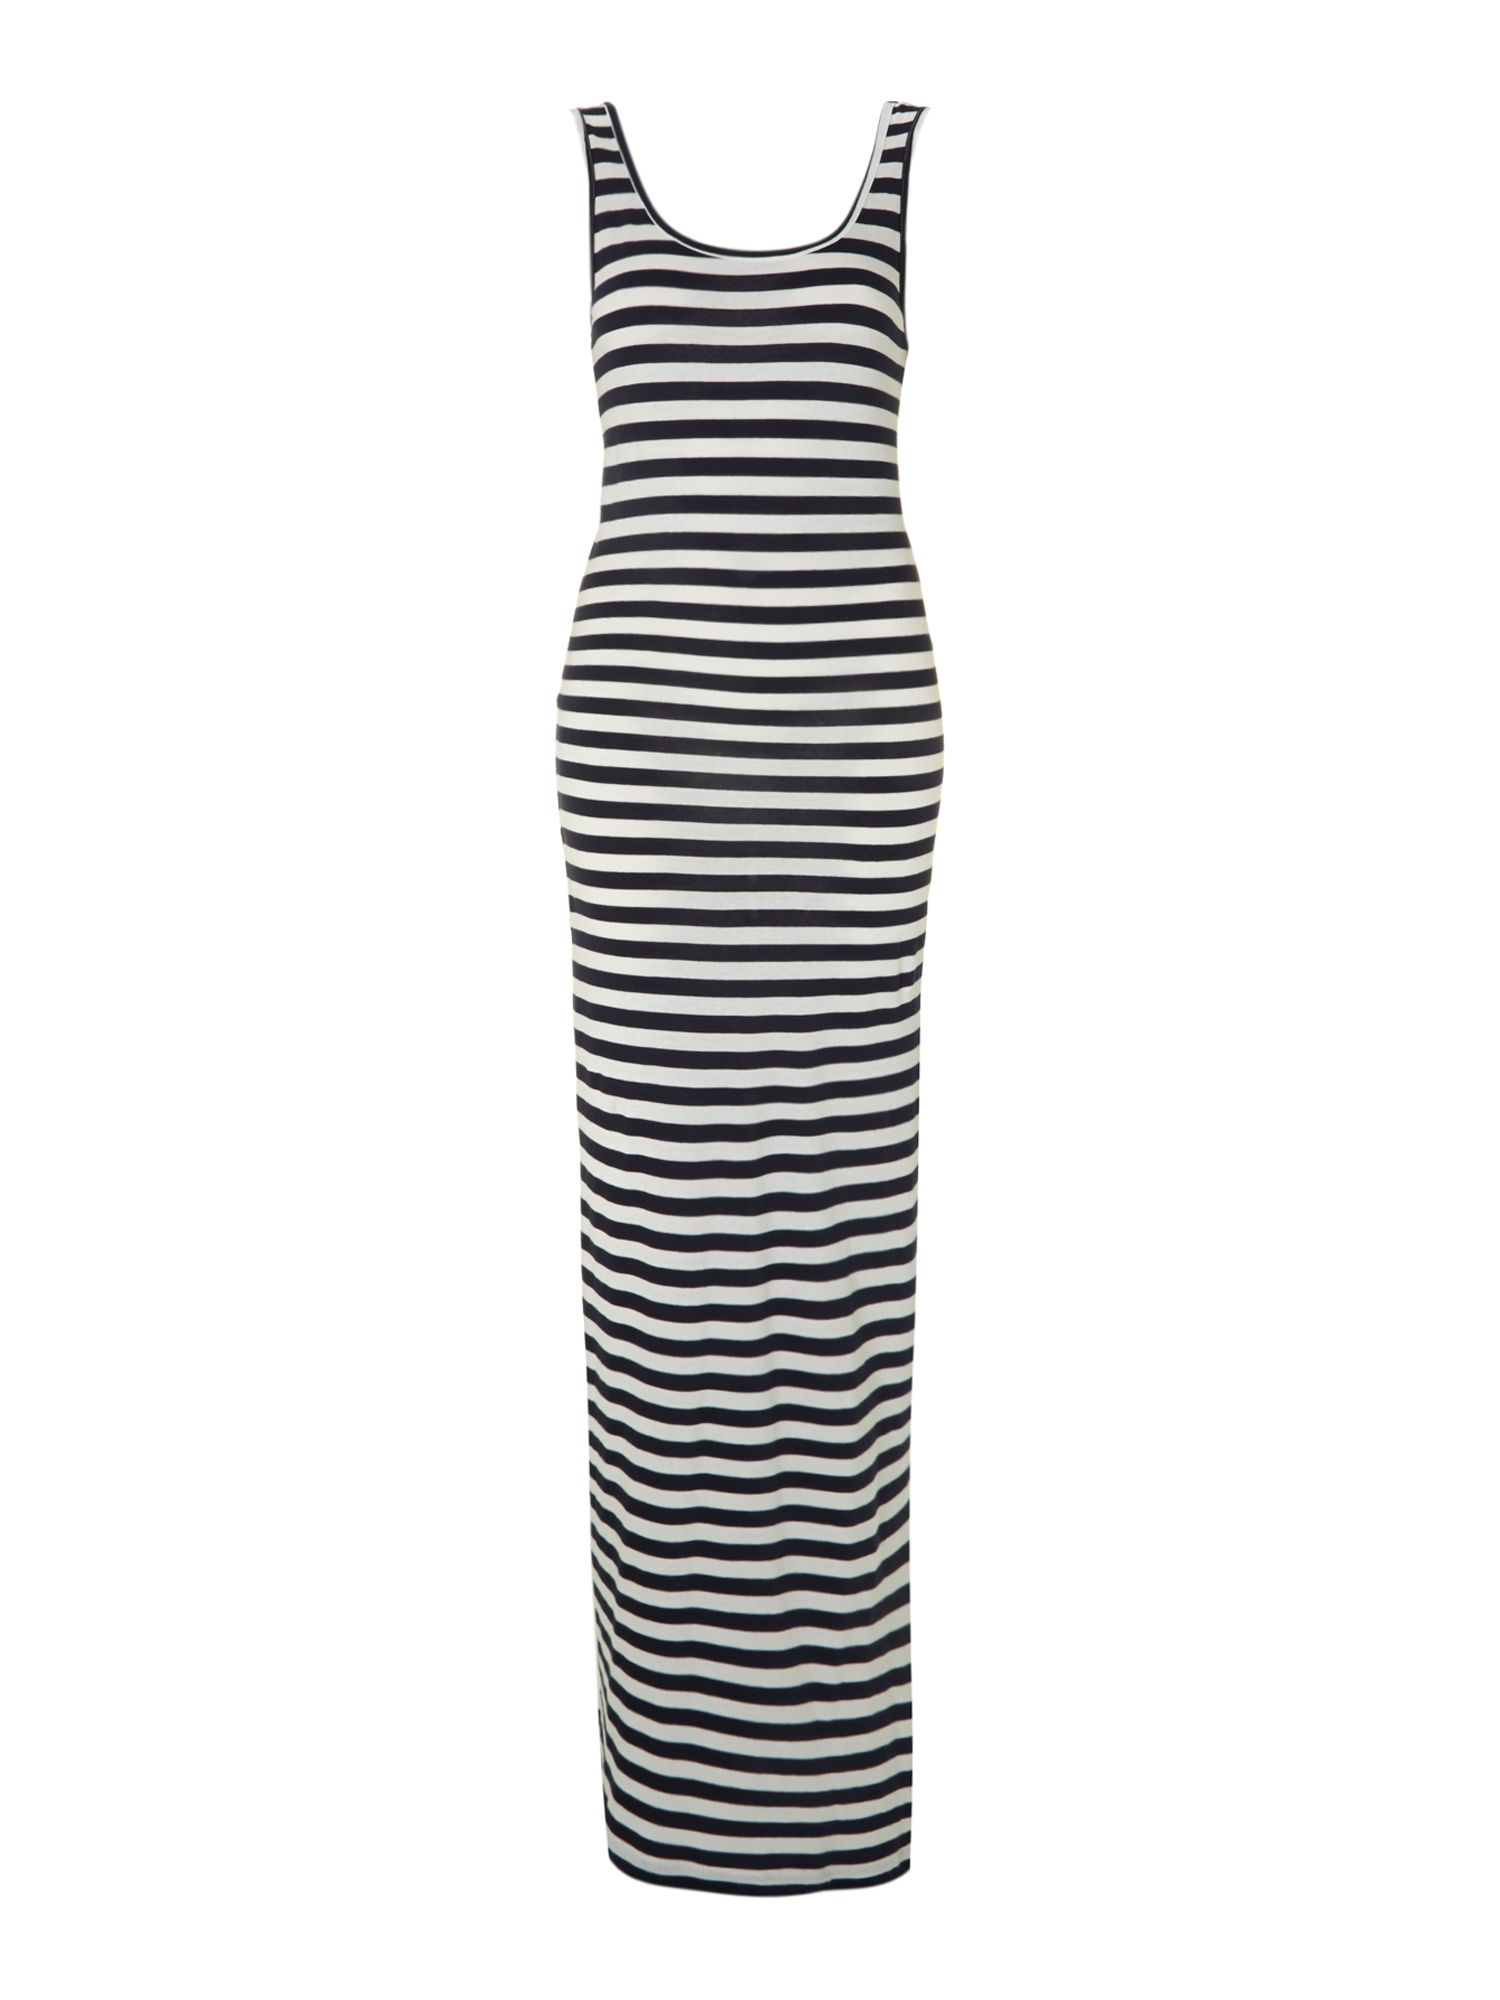 Beachy sleeveless striped maxi dress